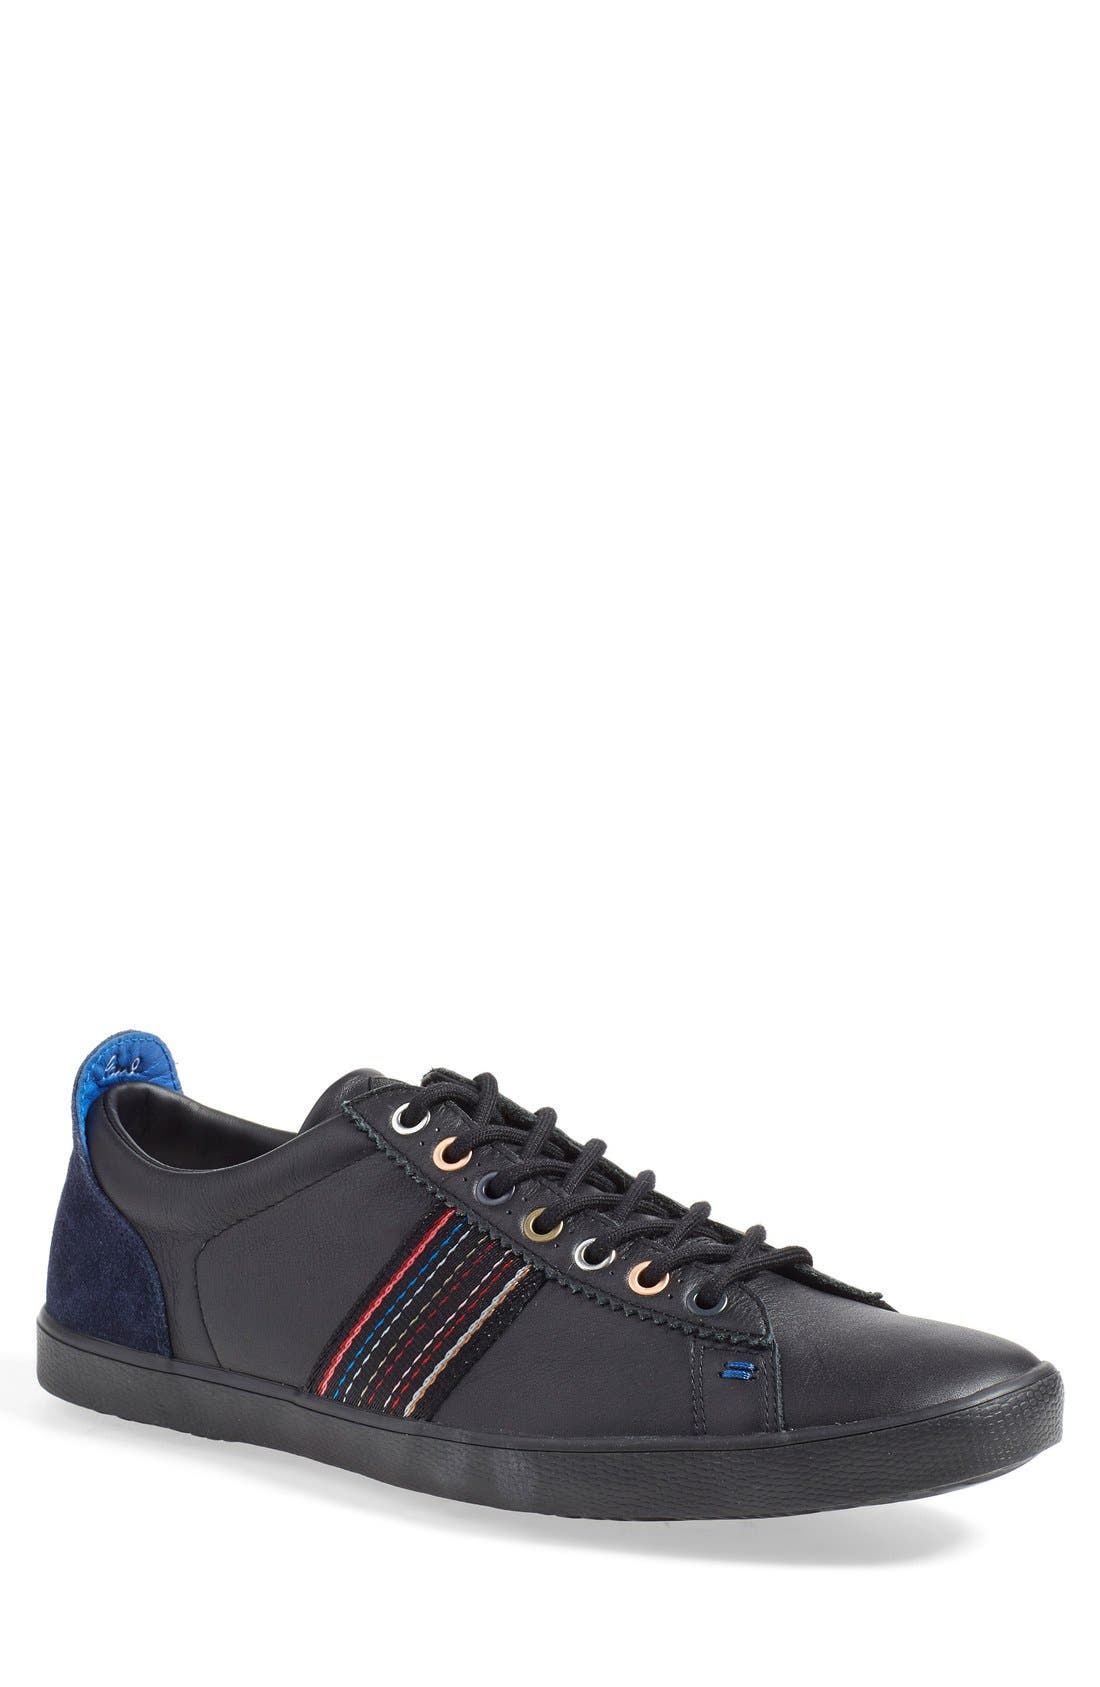 Alternate Image 1 Selected - Paul Smith 'Osmo' Sneaker (Men)